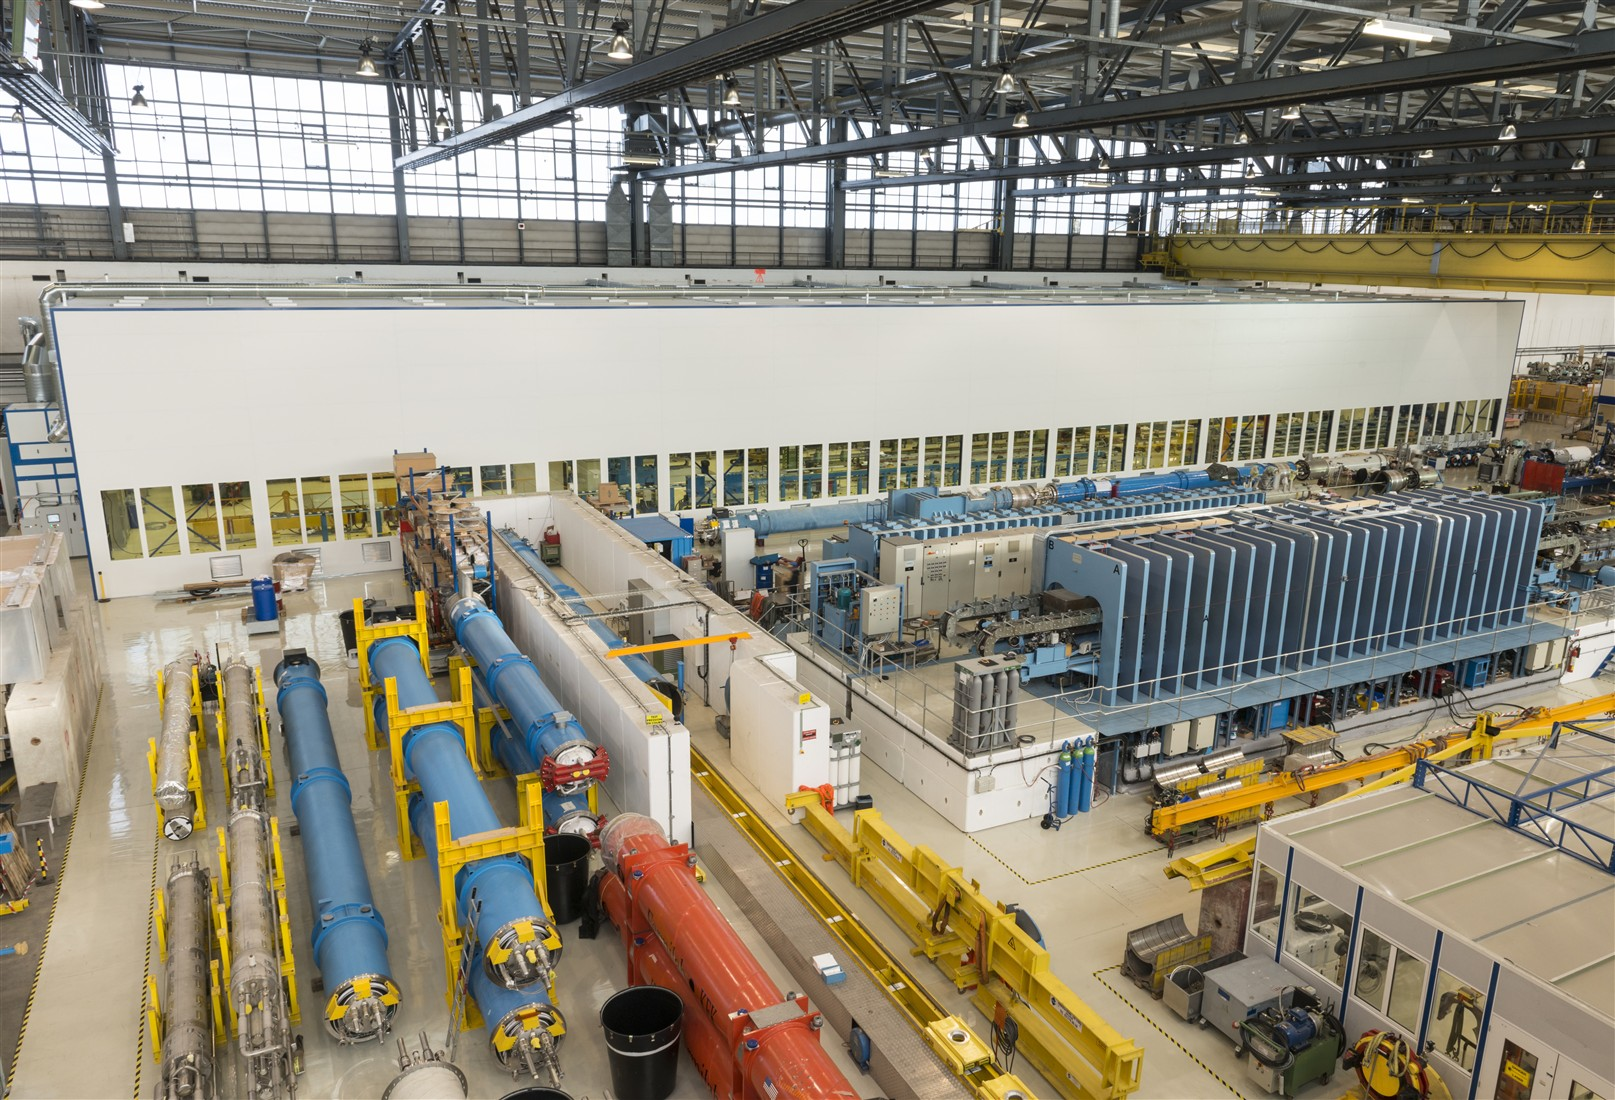 A view of the Large Magnet Facility in Building 180